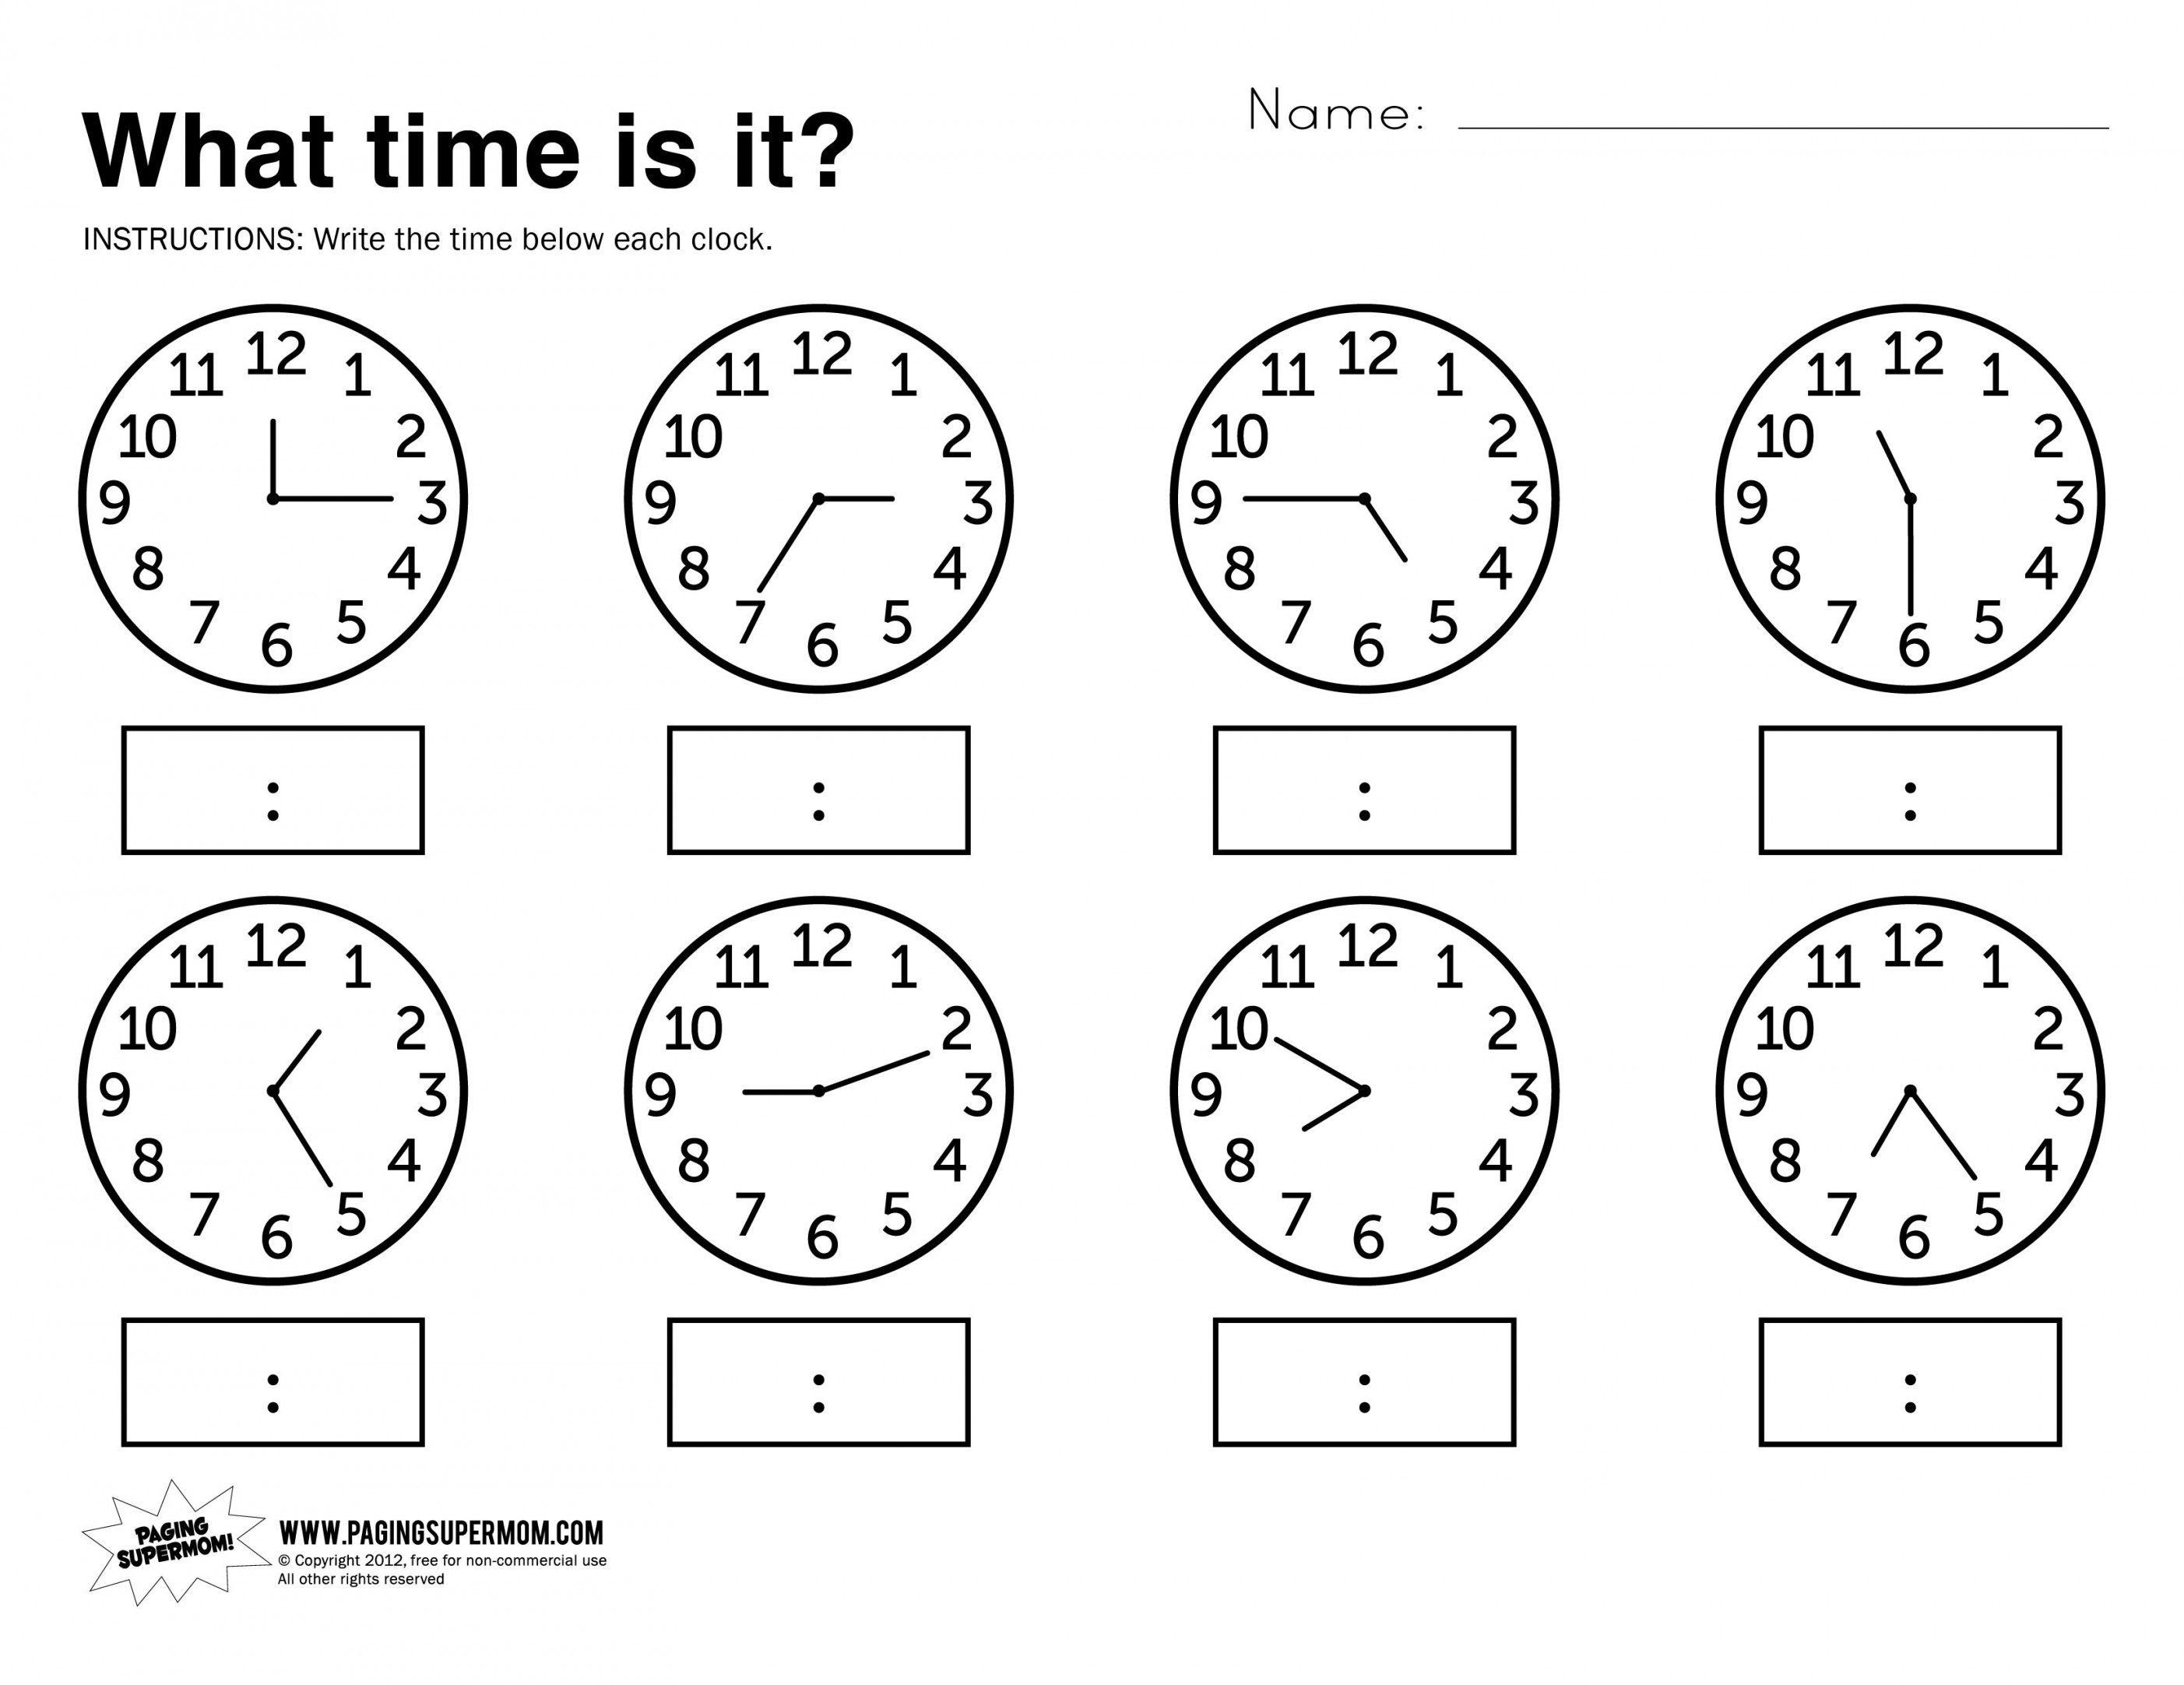 Telling Time Worksheets Grade 3 | Lostranquillos - Free Printable | Free Printable Telling Time Worksheets